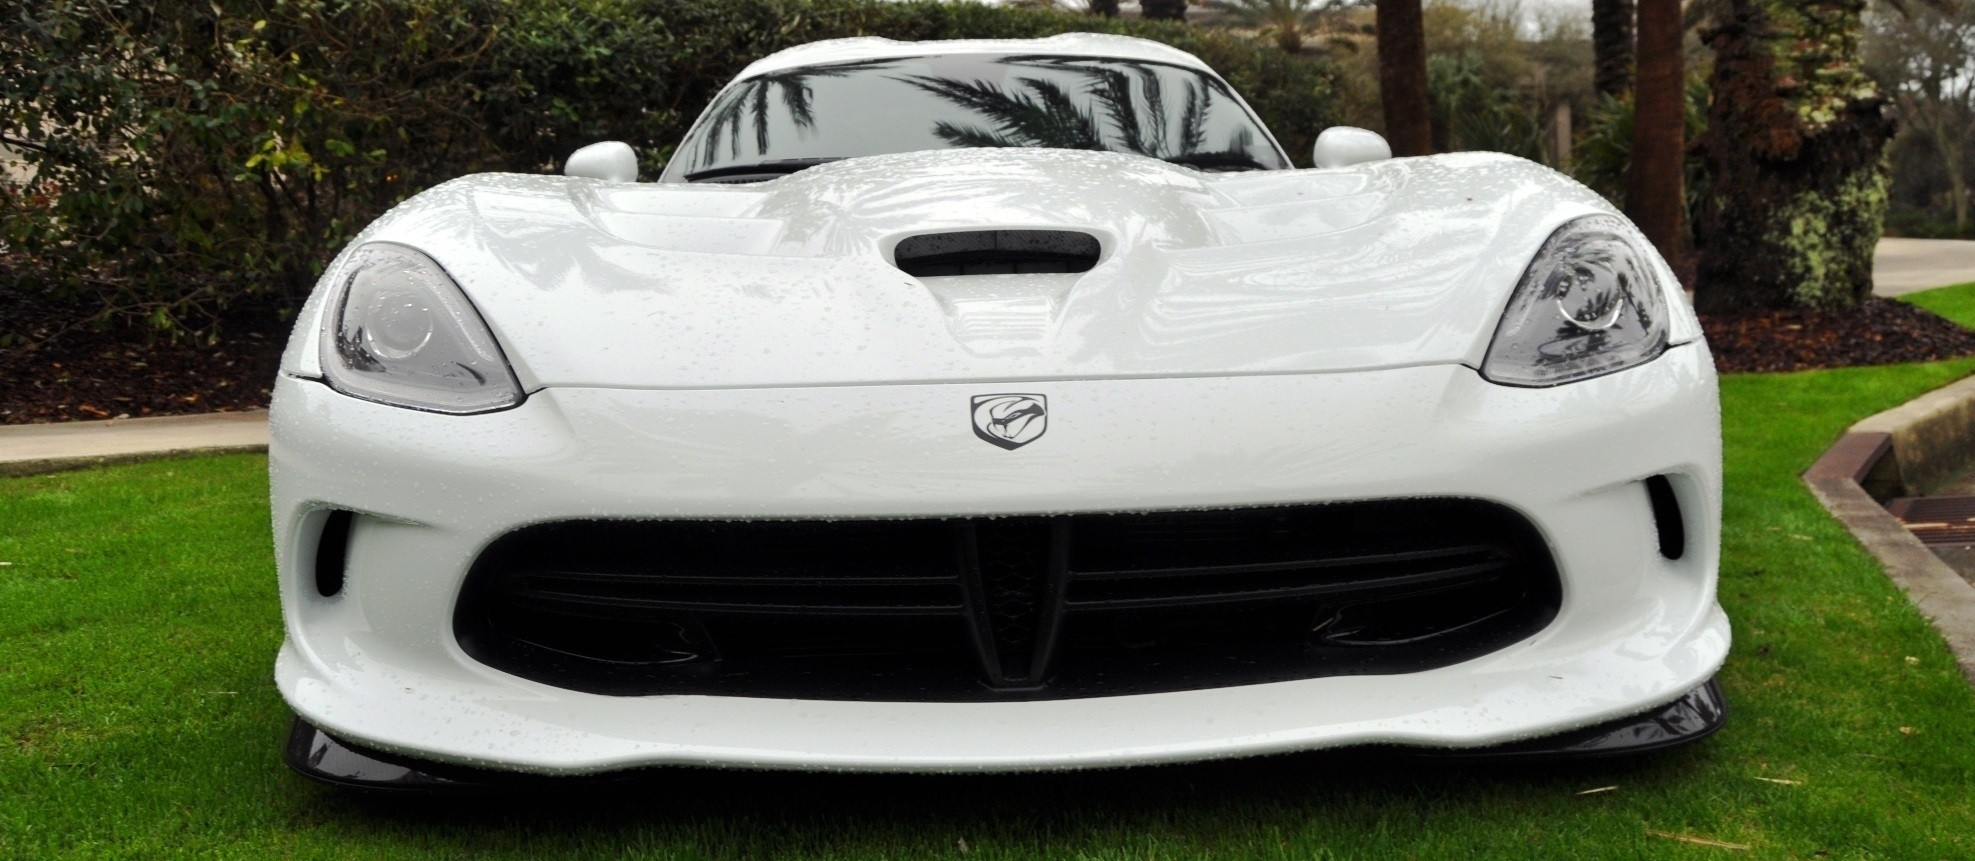 2014 SRT Viper TA in 25 All-New, Real-Life Photos with Carbon Aero Styling Options 23